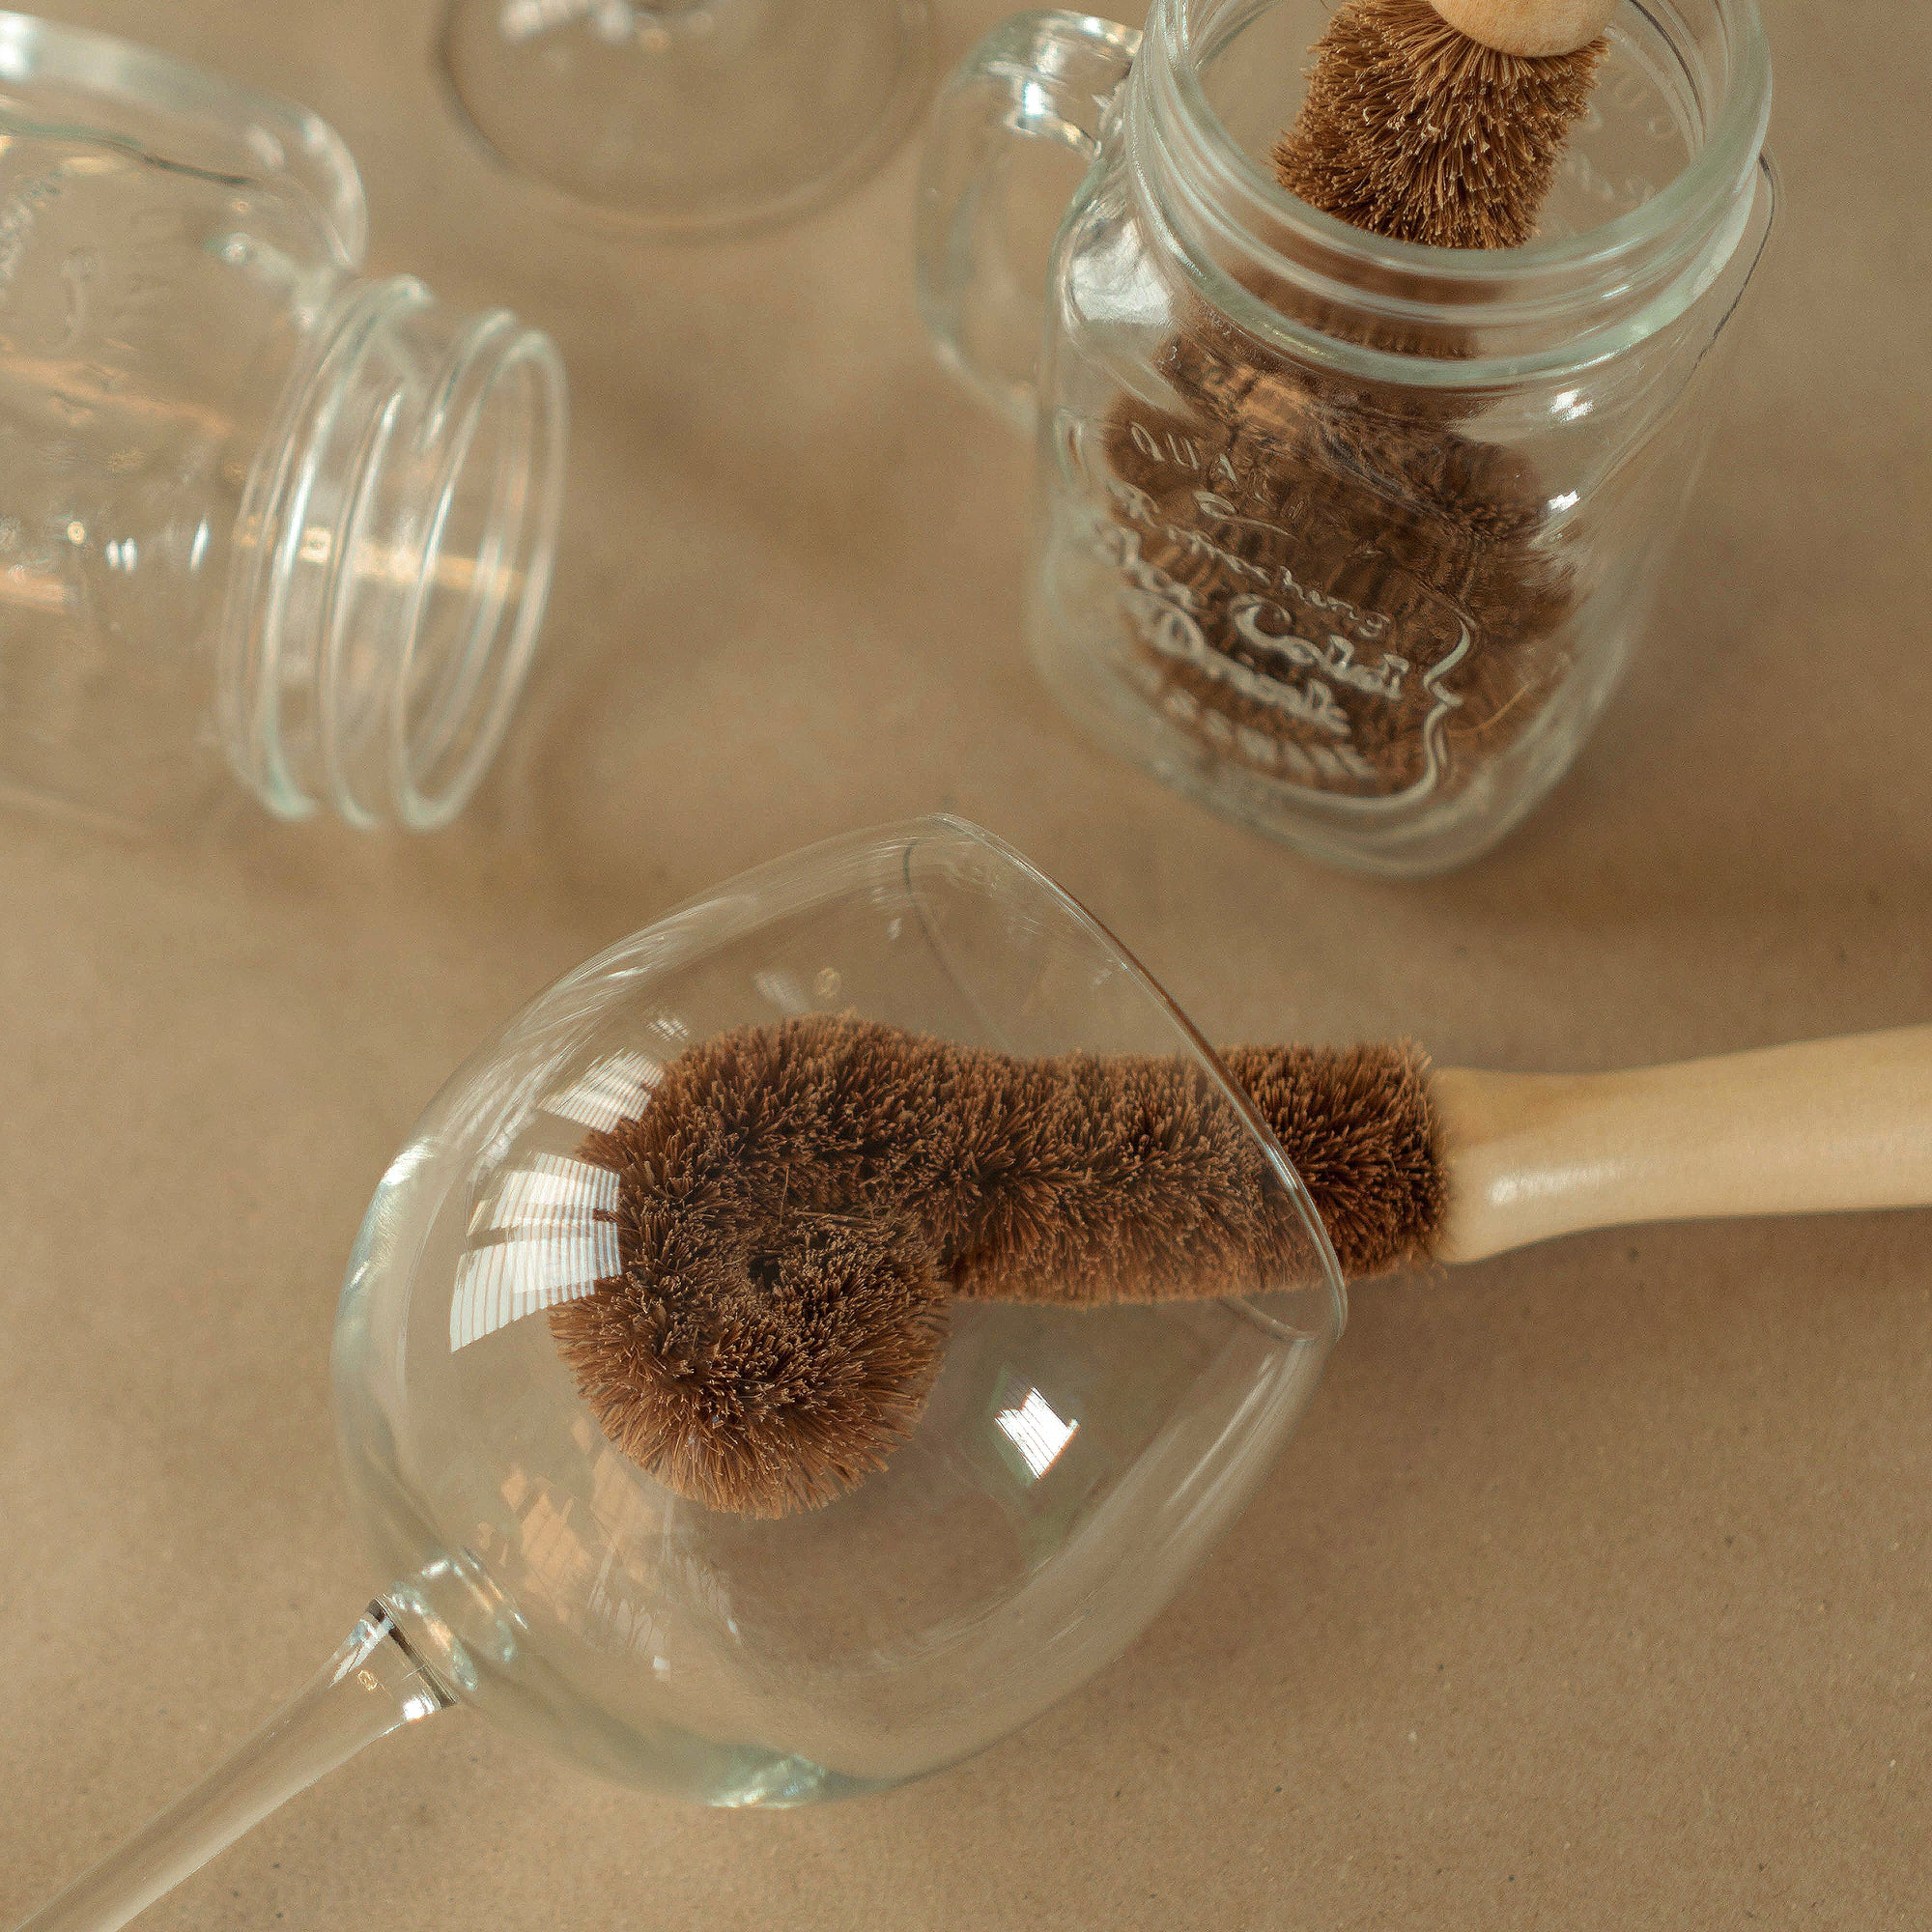 coconut coir glass brush